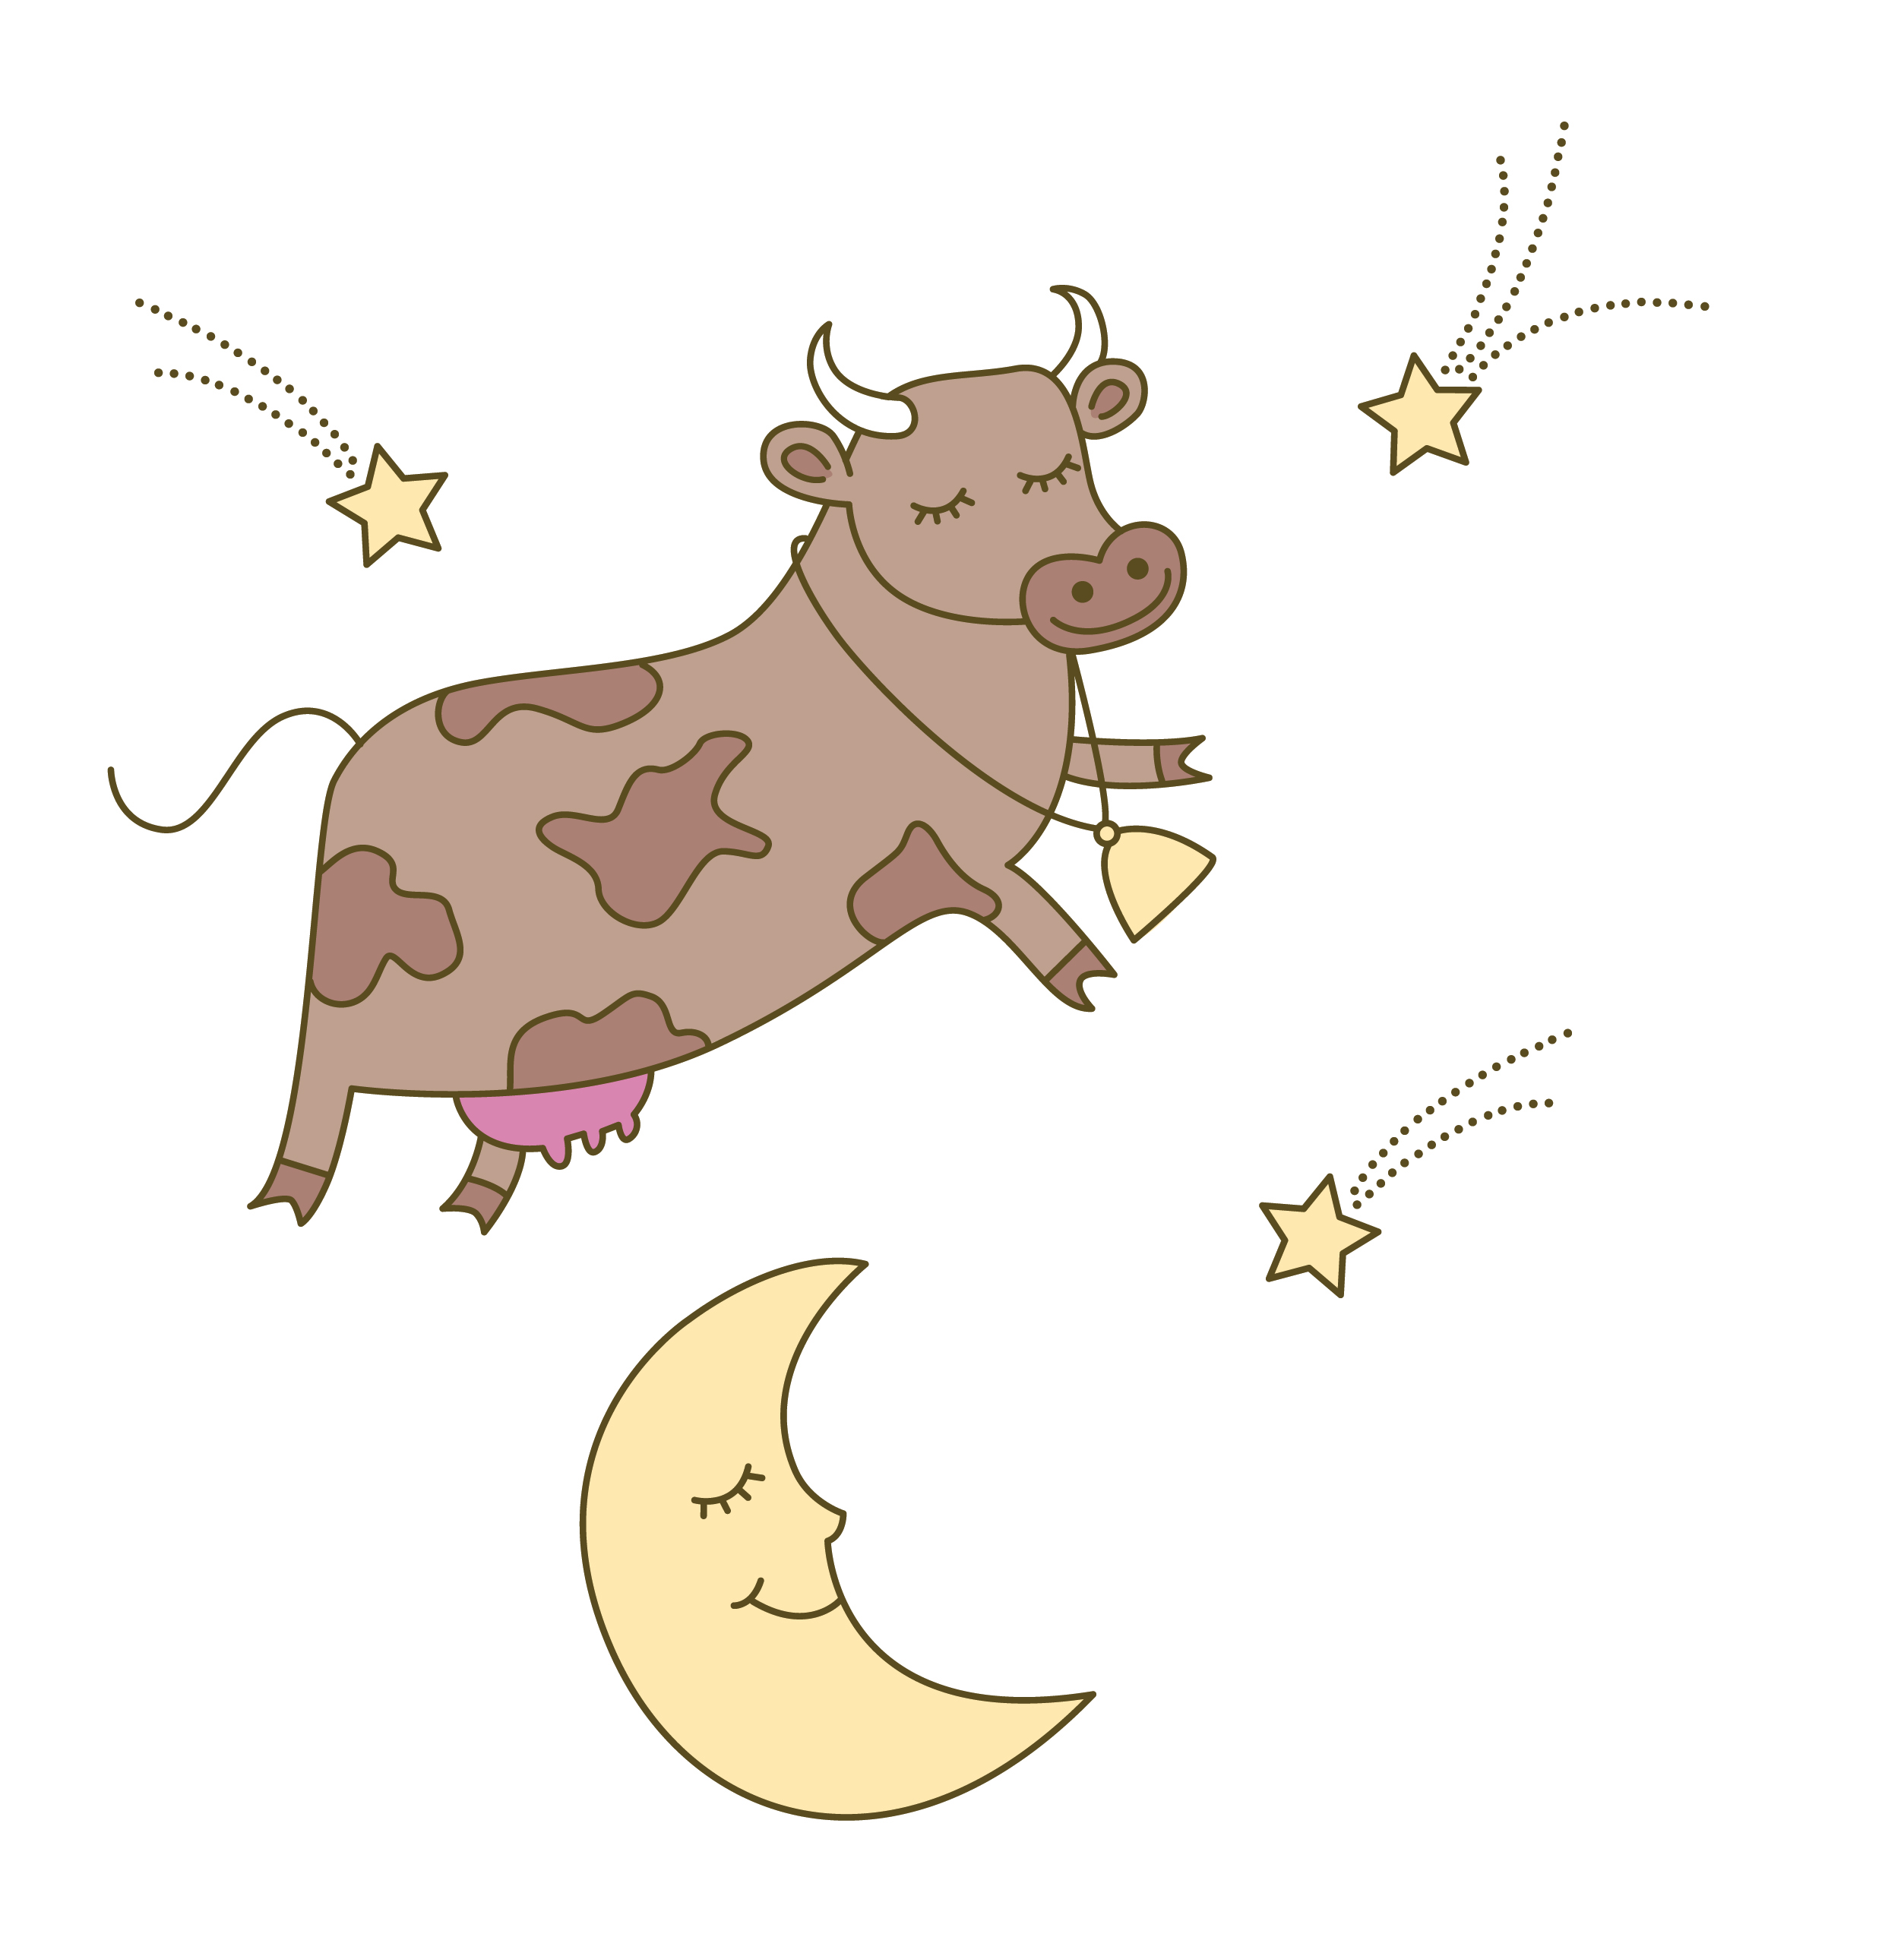 The cow jumped over the moon illustration.